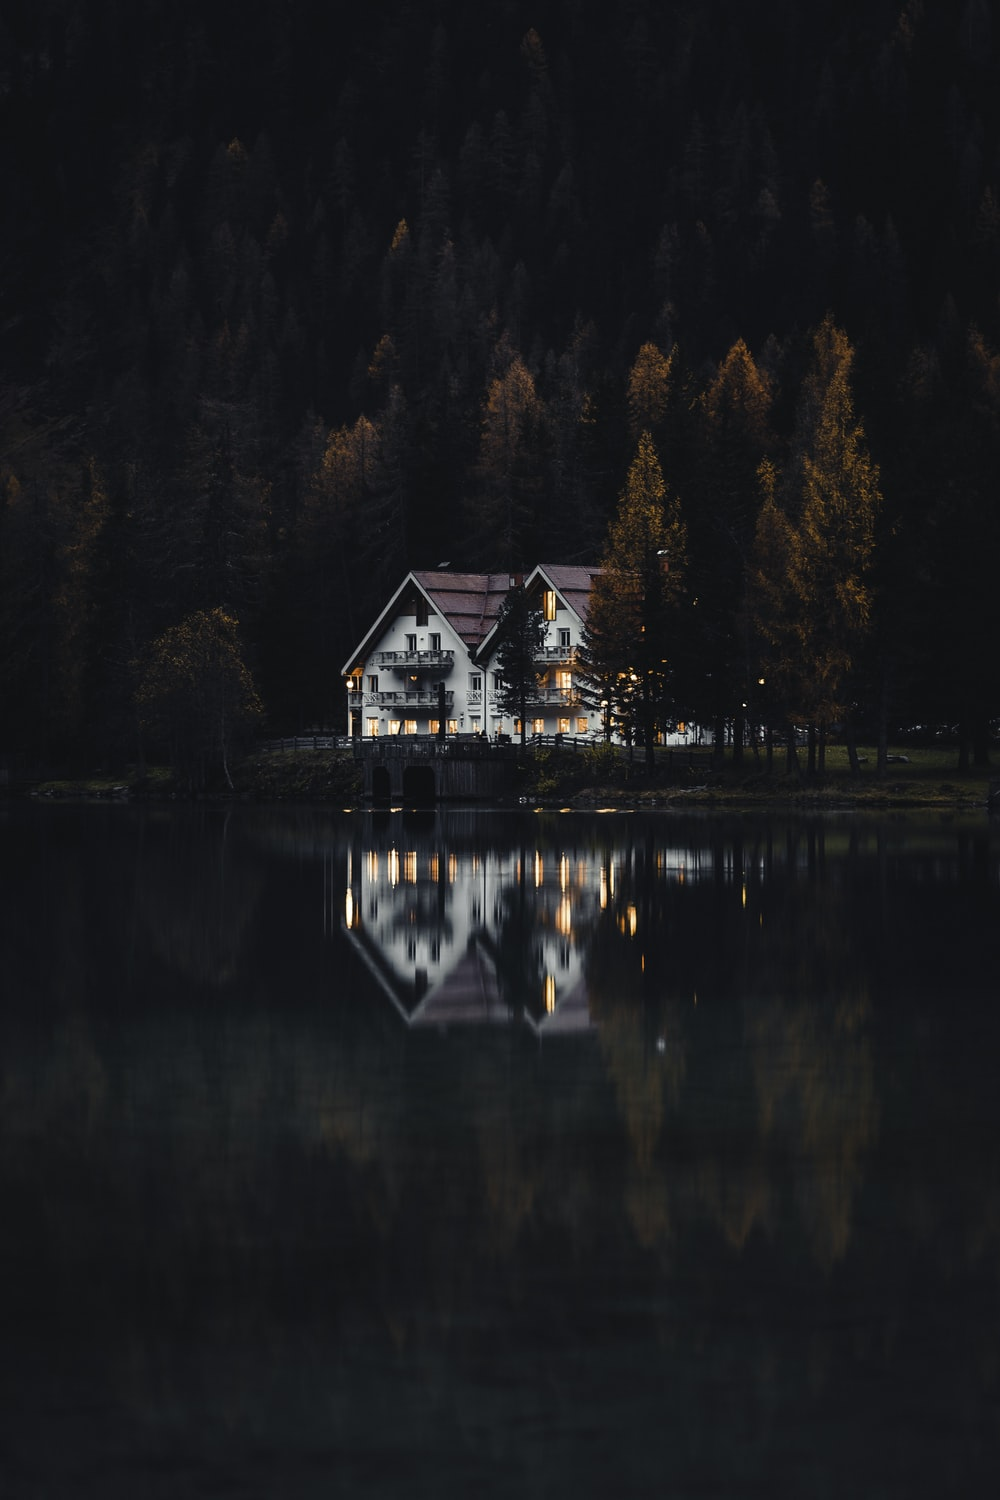 white and brown house near lake surrounded by trees